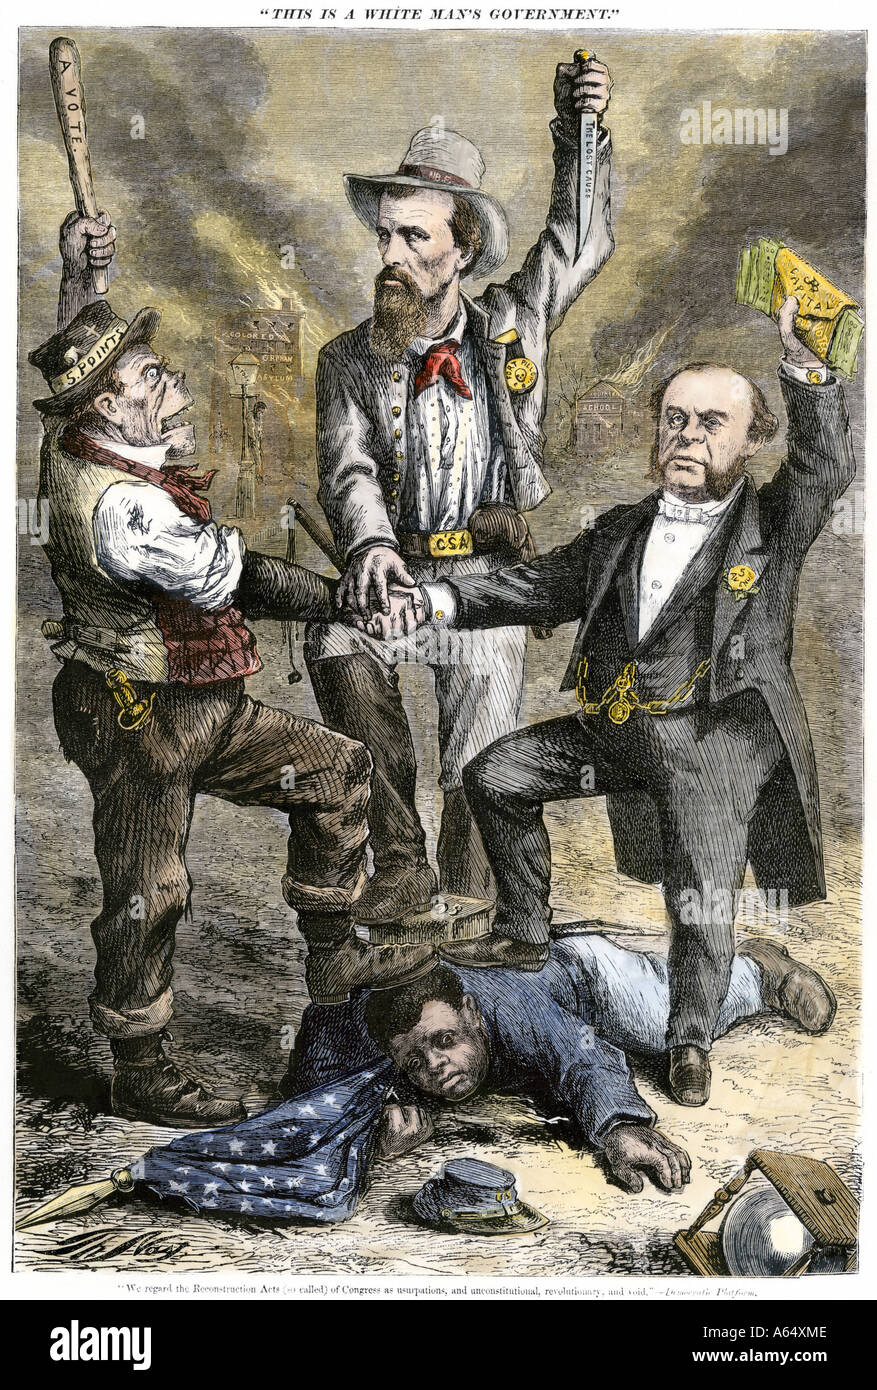 Freed slave held down by an immigrant a businessman and a southerner declare a white male government 1868. Hand-colored woodcut of Thomas Nast cartoon - Stock Image